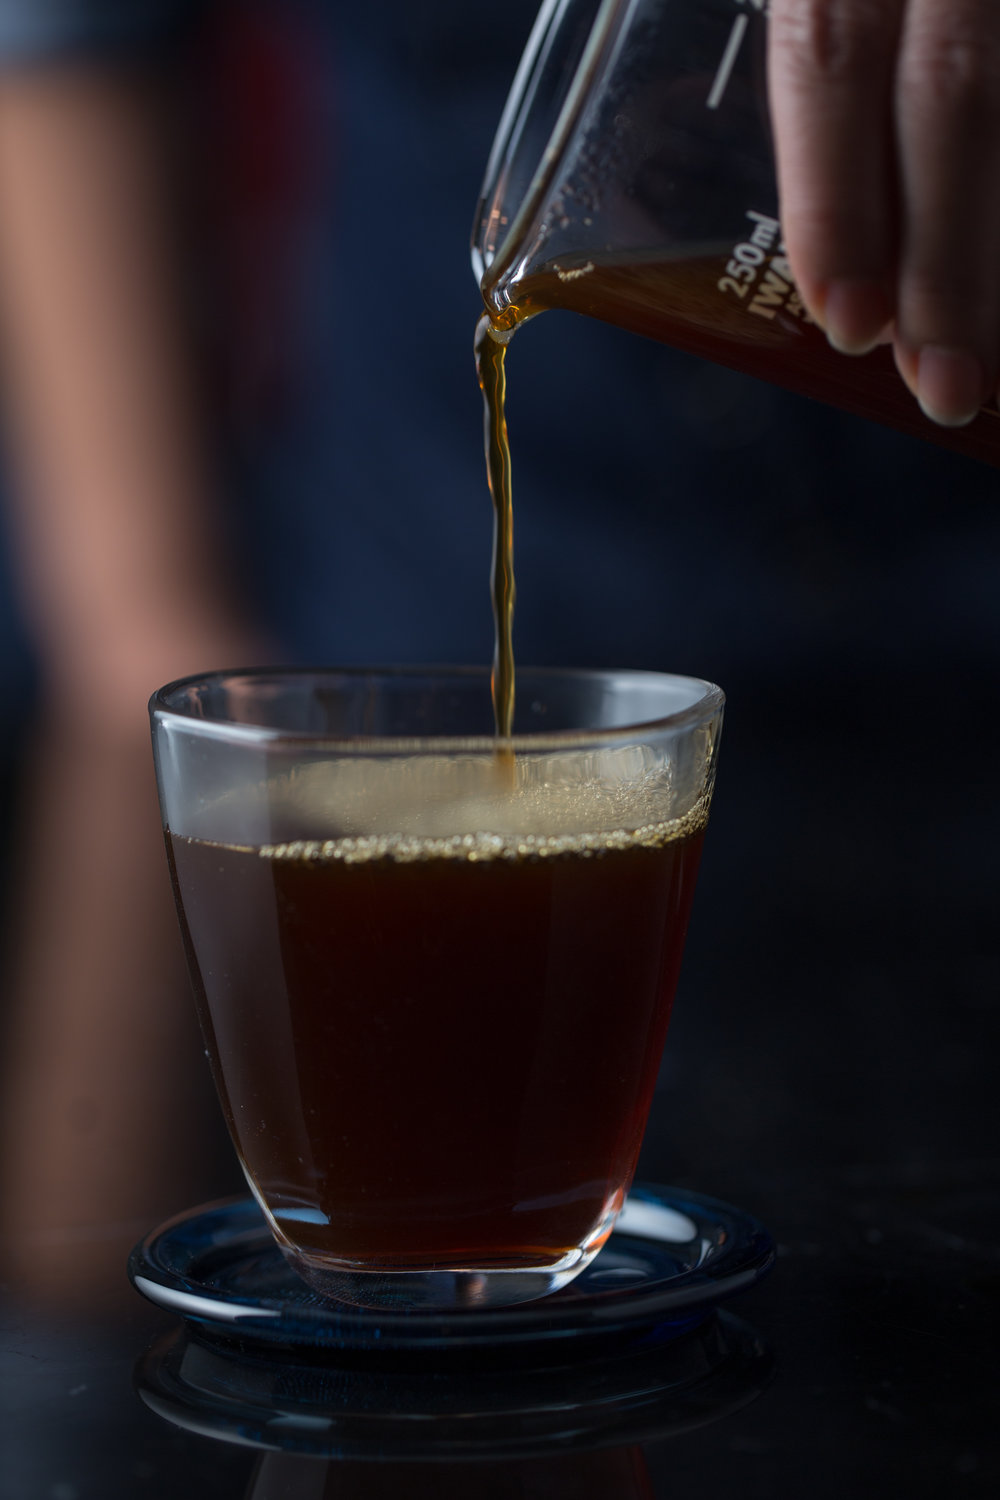 - Single origin cold-brewardi sidama, Ethiopia